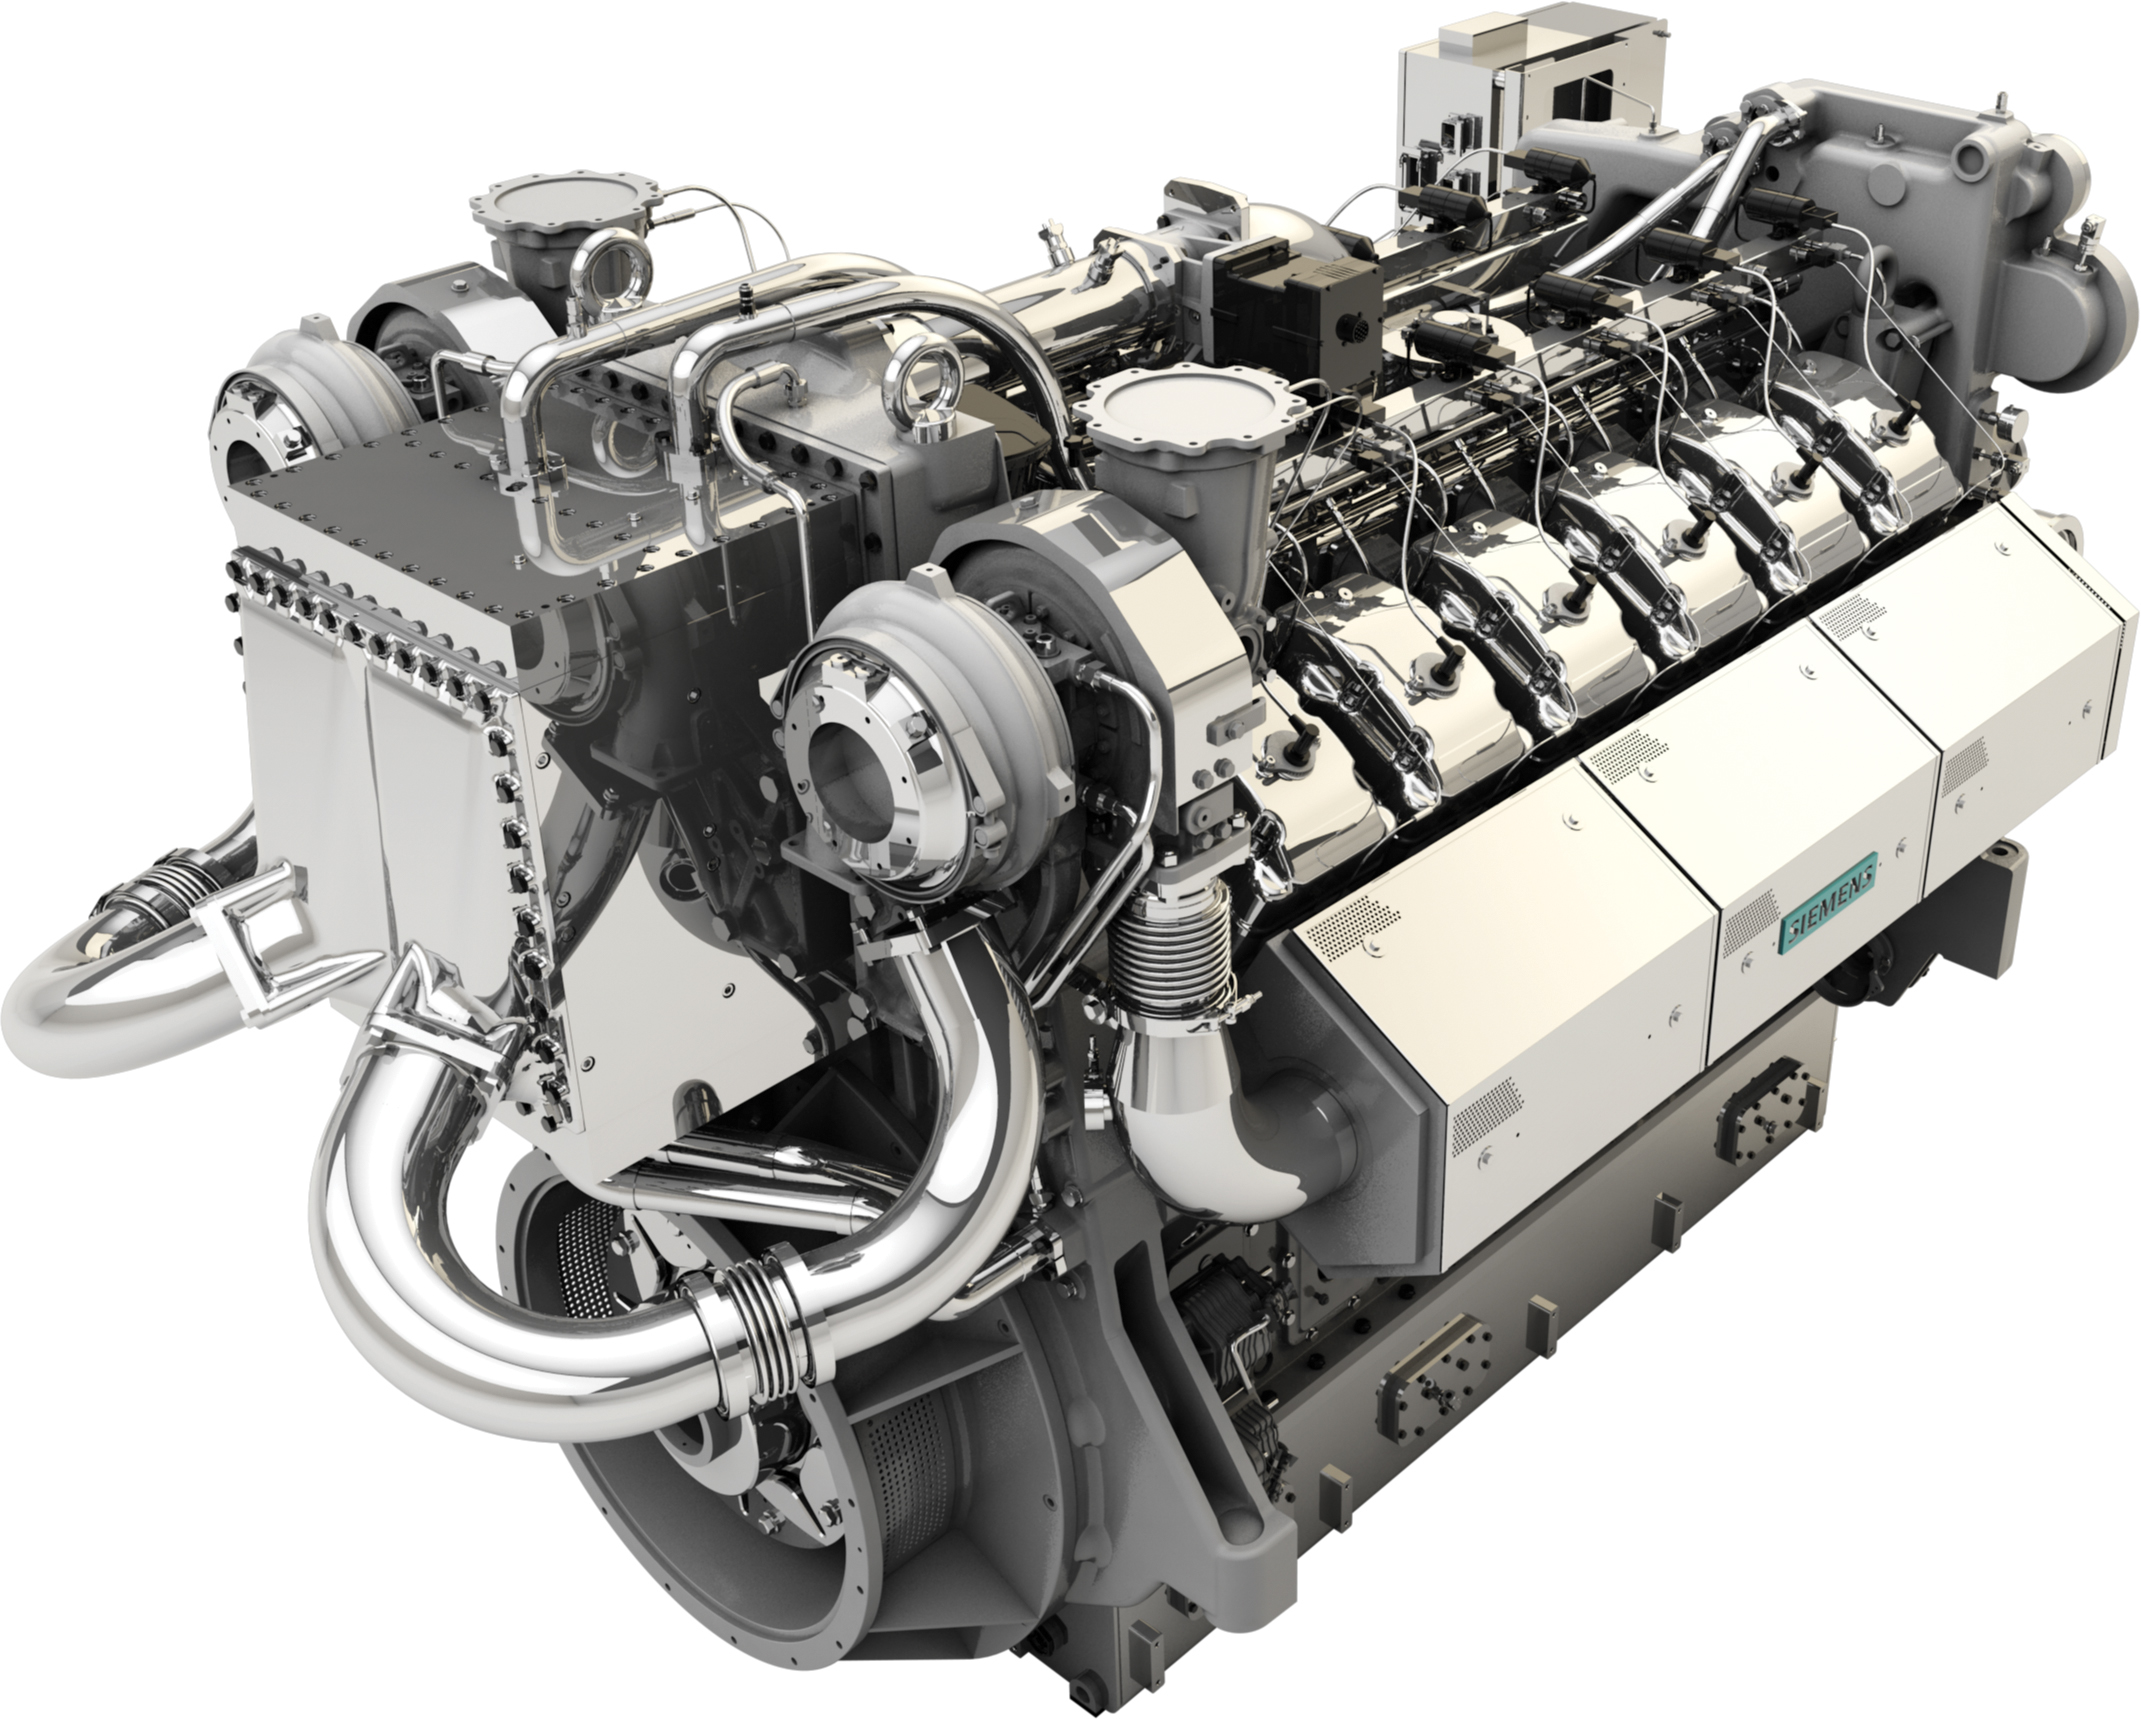 Siemens launches new gas engine E-series with power output of 2 MW | Press  | Company | Siemens